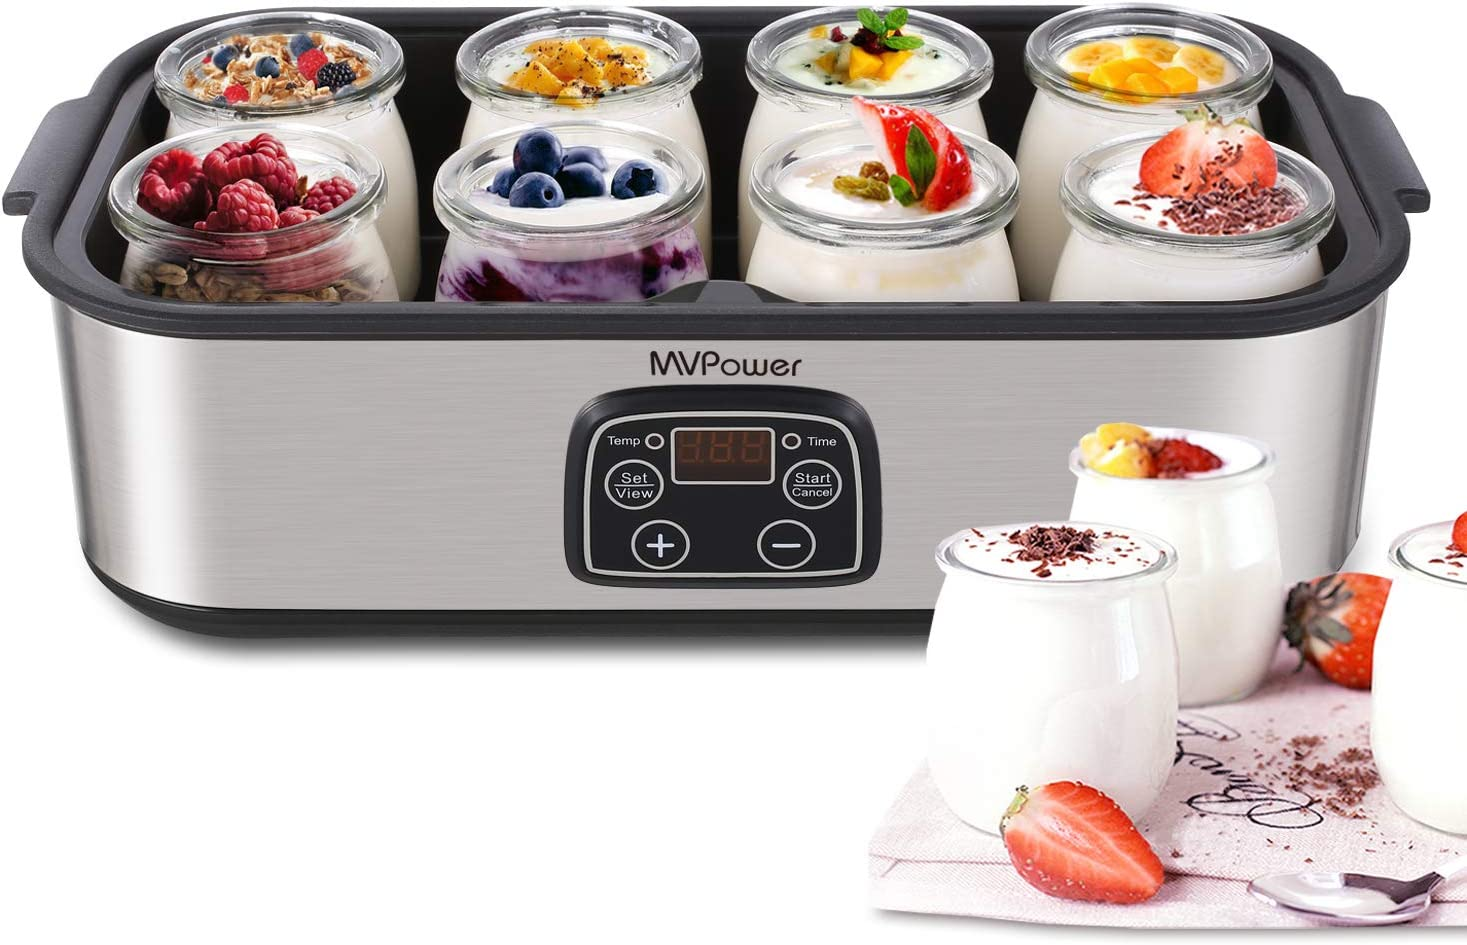 Yogurt Maker – MVPower Automatic Digital Yogurt Machine with 8 Glass Jars 48 Ozs